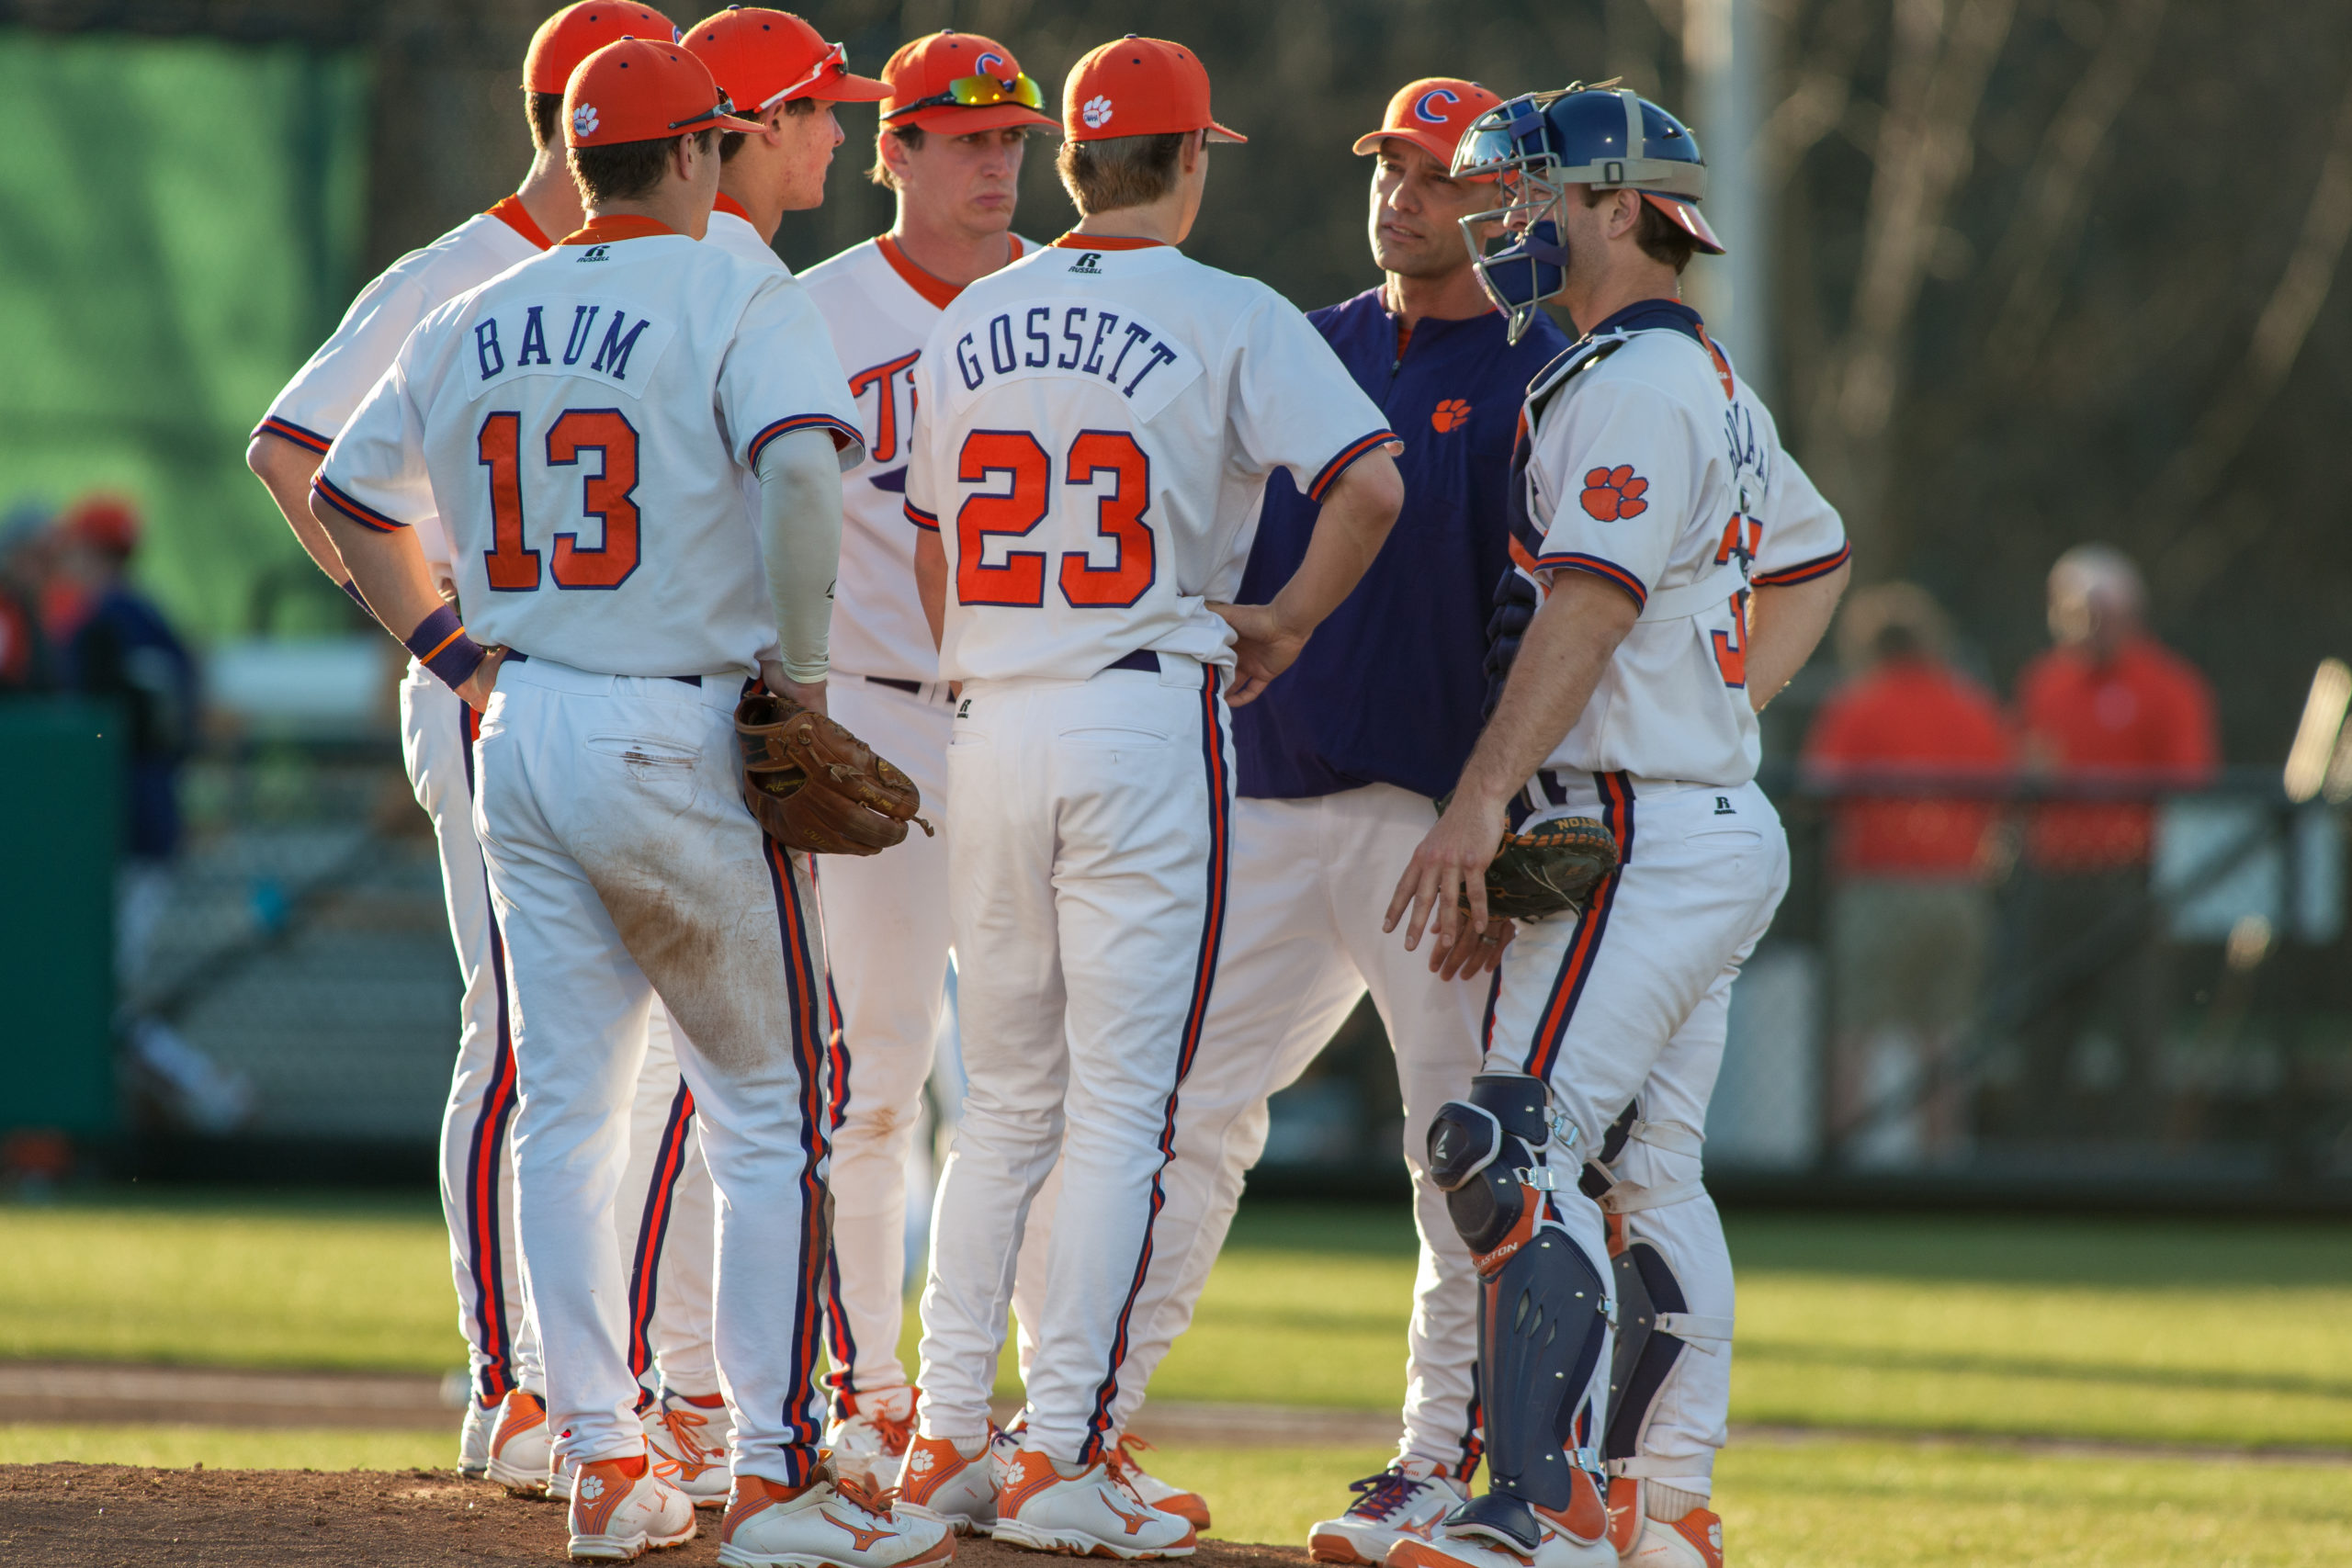 College baseball players stand in a huddle at the pitcher's mound.